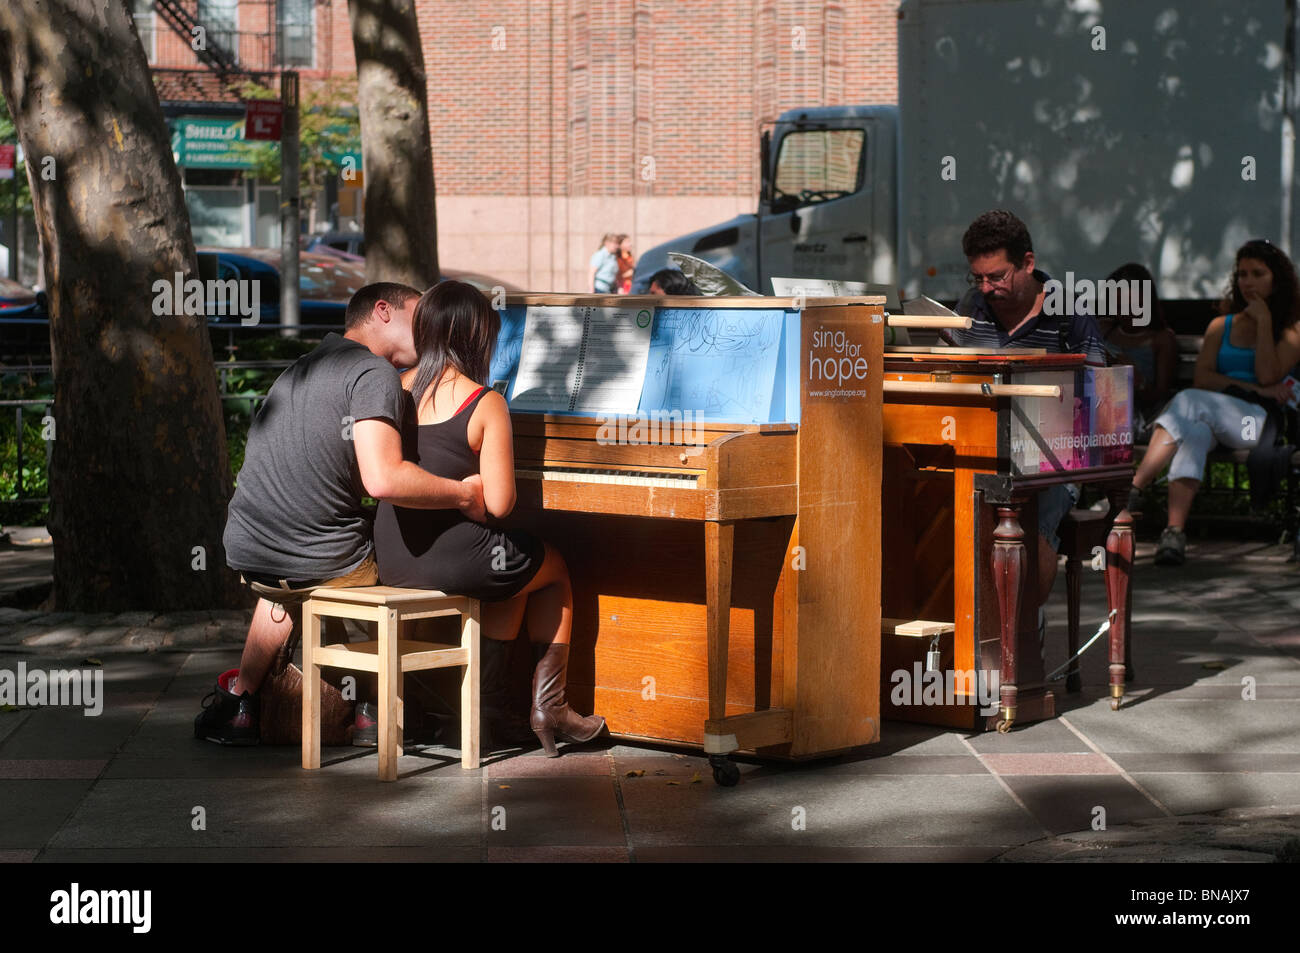 Play Me I 'm Yours Klaviere in Tribeca Park © Stacy Walsh Rosenstock/Alamy Stockbild